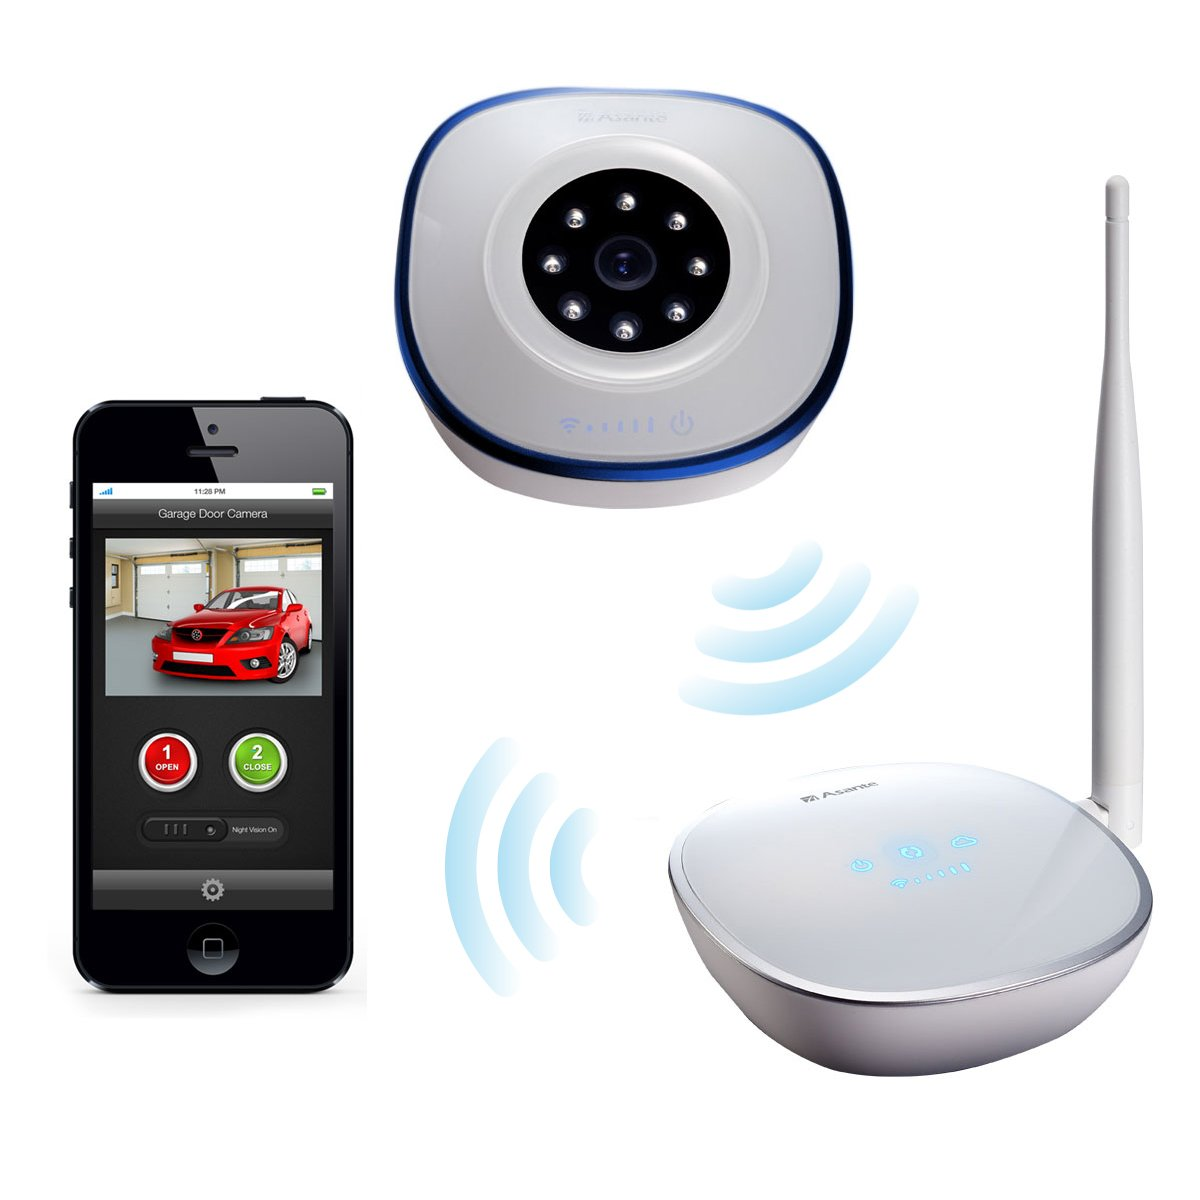 Asante Garage Door Opener With Camera Kit, Remotely Open And Close Garage  Doors From A Smartphone With Internet Access And See Streaming Video Of  Your